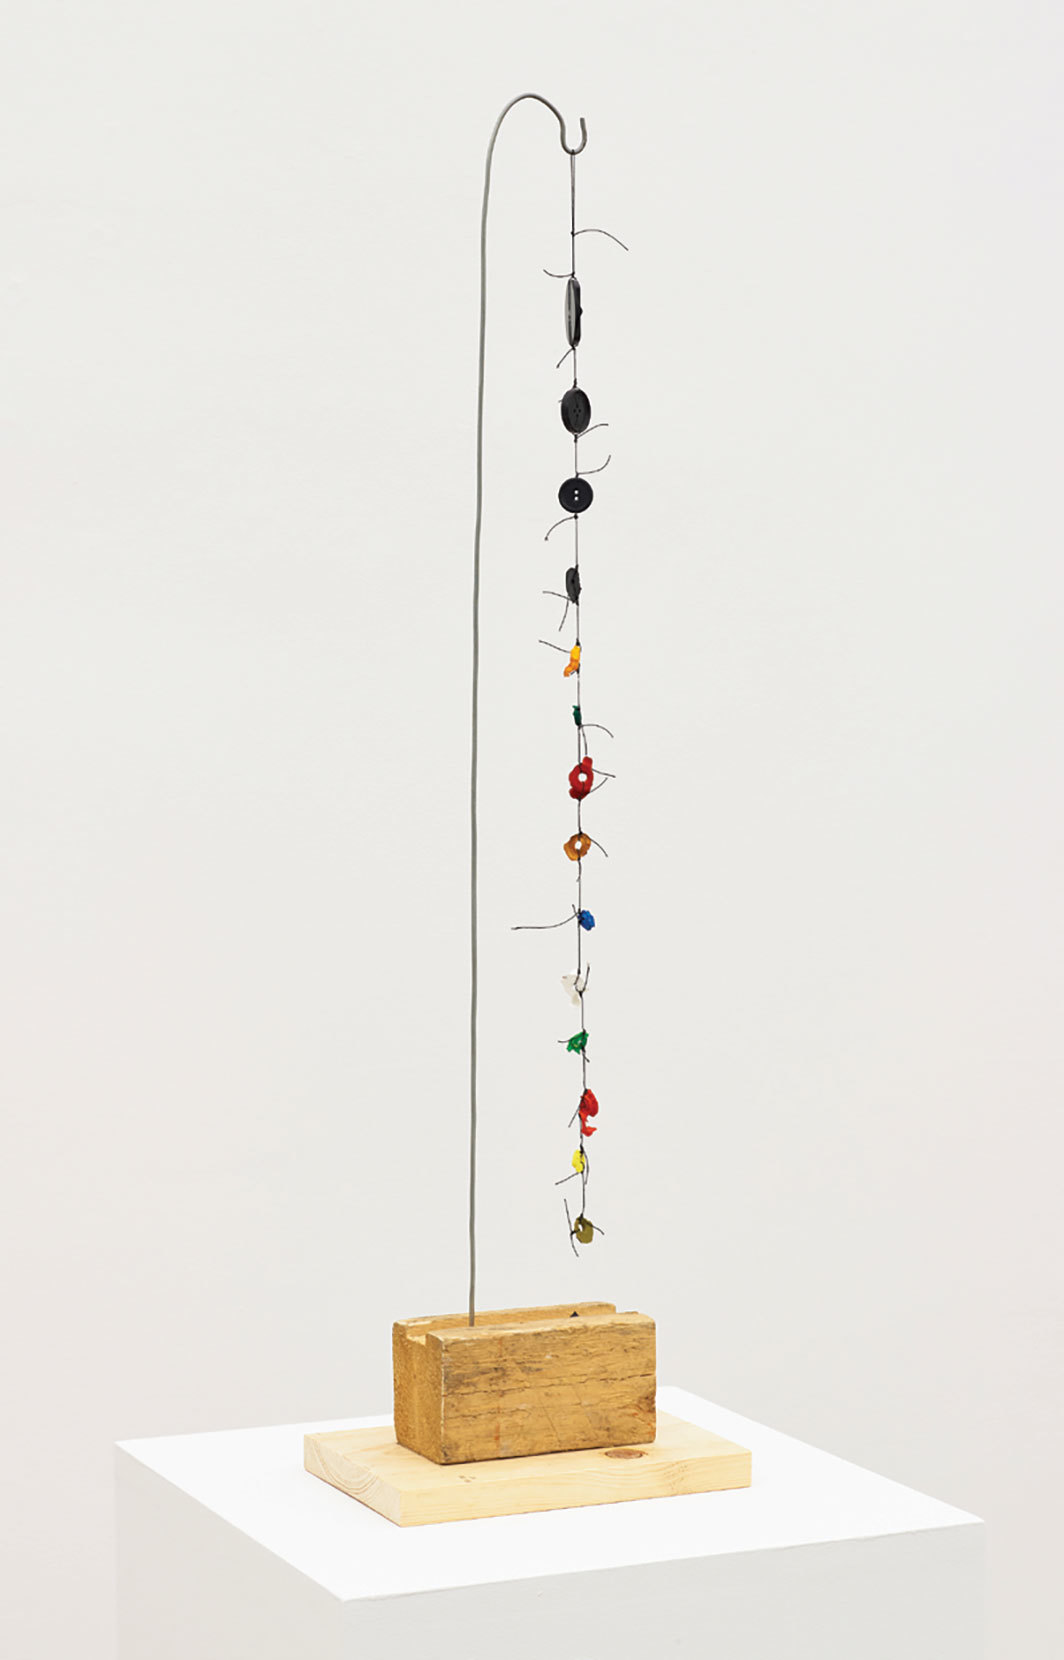 "B. Wurtz, Untitled, 2018, wood, string, buttons, acrylic paint, wire, 30 × 8 × 5 1⁄2""."